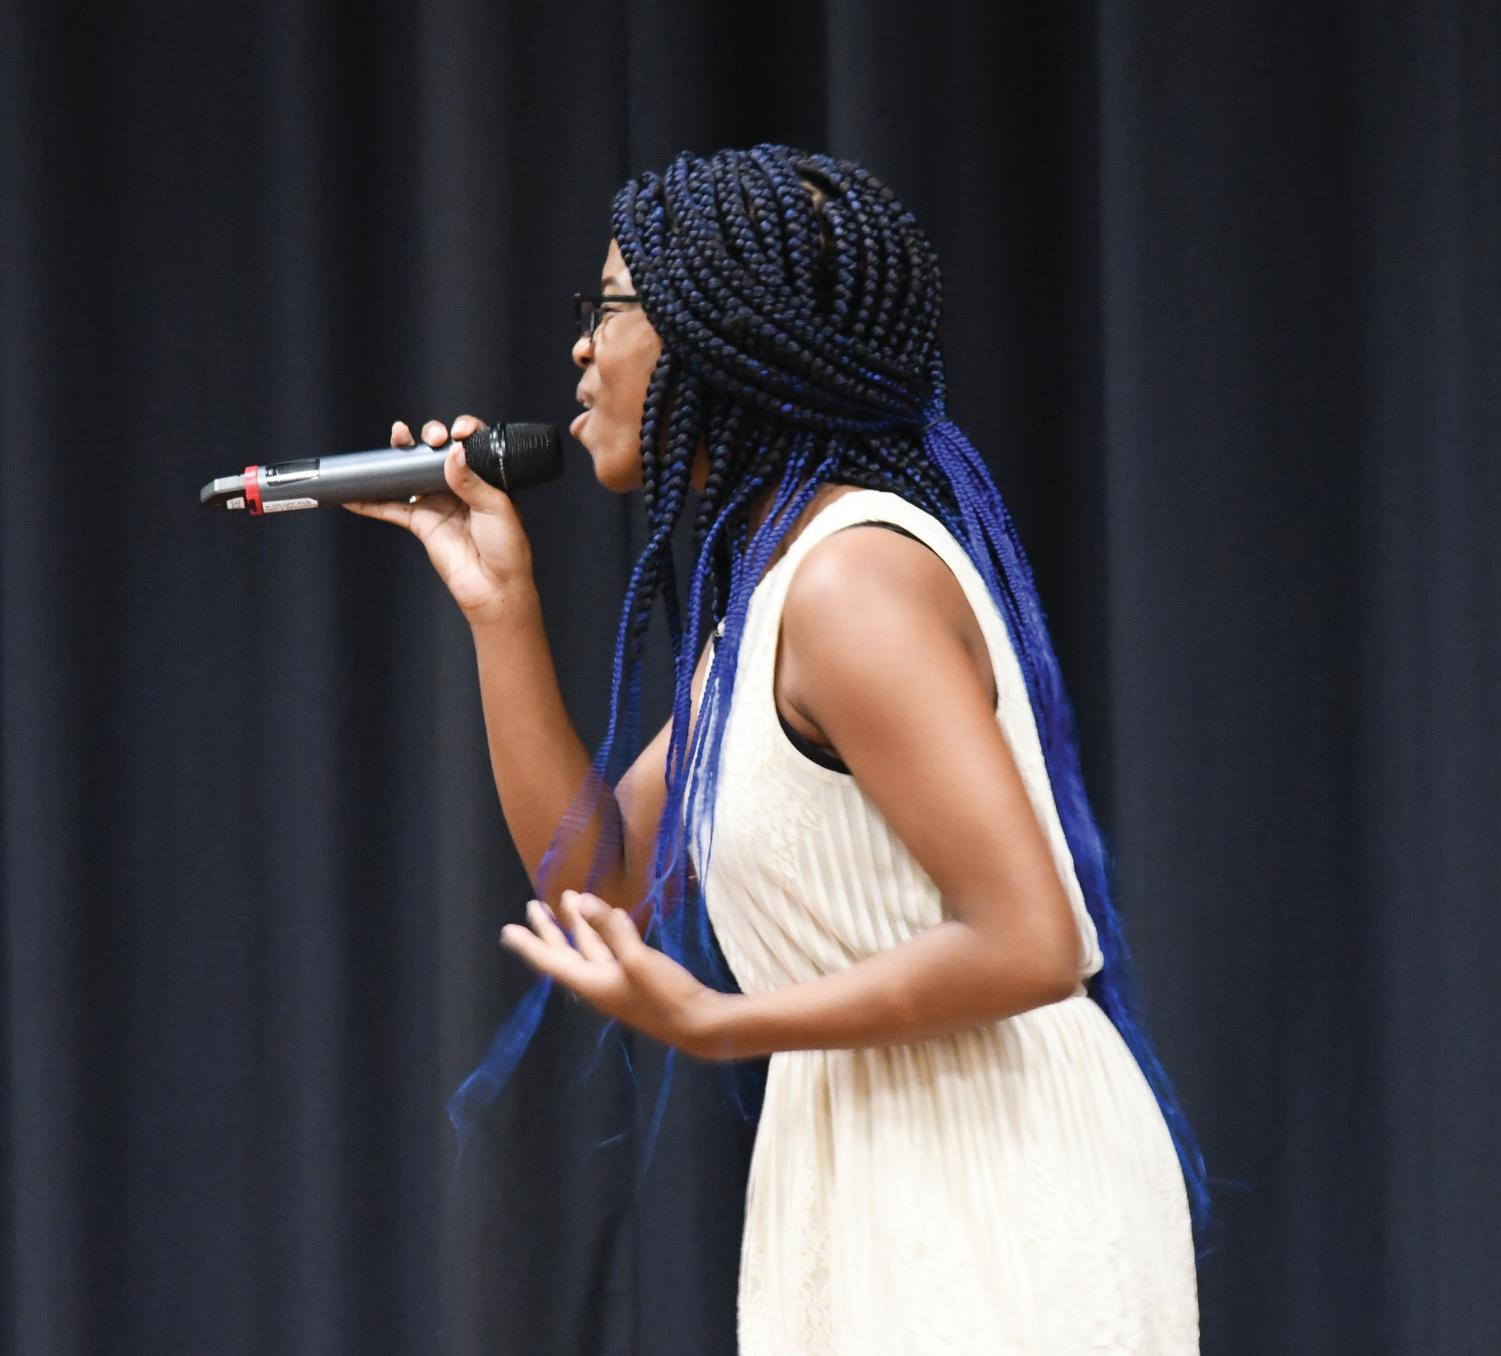 Tasia Phillips auditions for FMU's Got Talent. She received the golden buzzer for her performance of